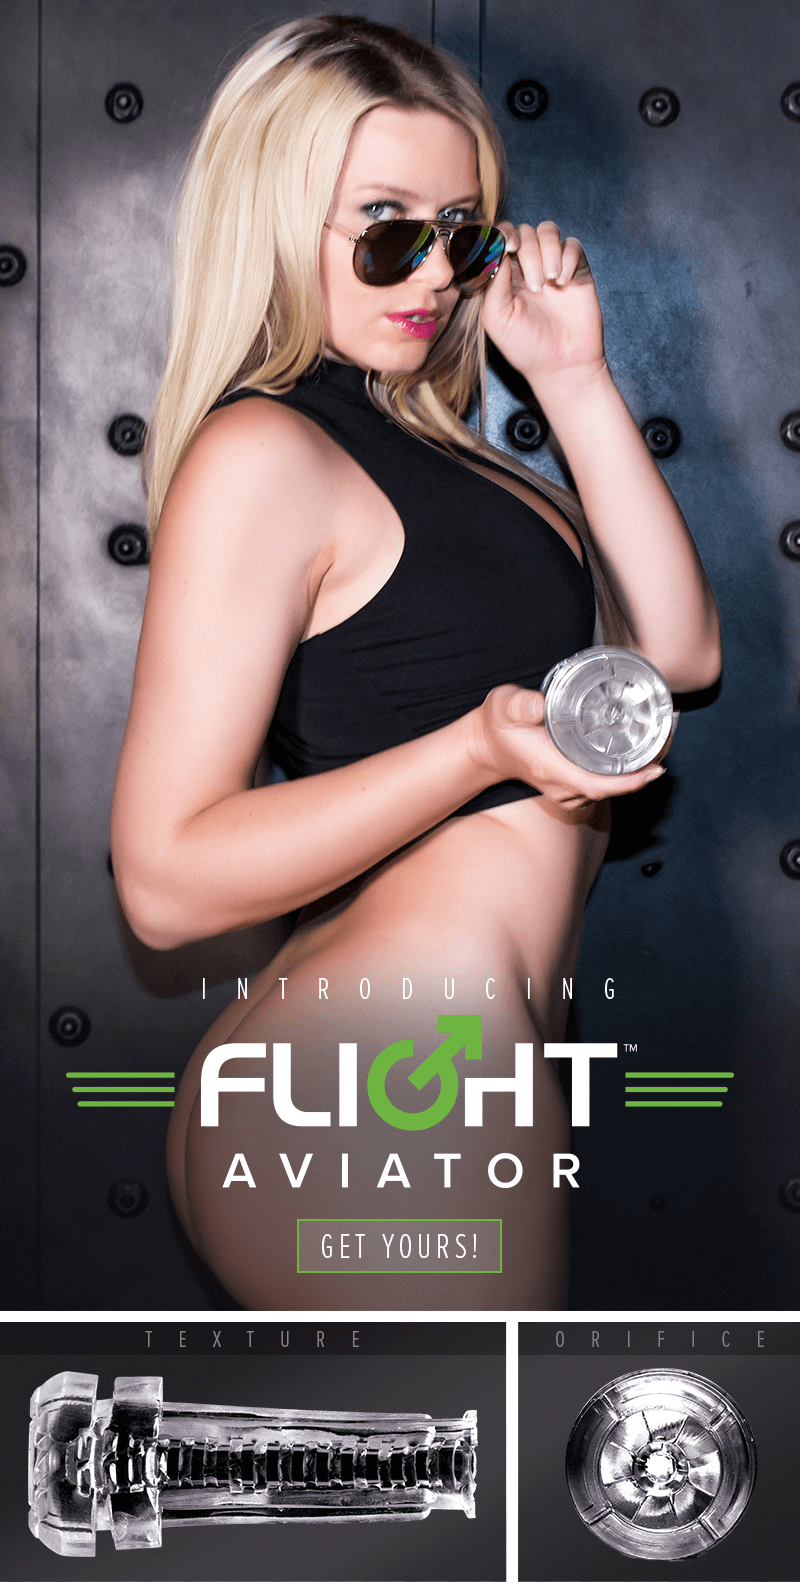 Introducing Fleshlight Flight Aviator